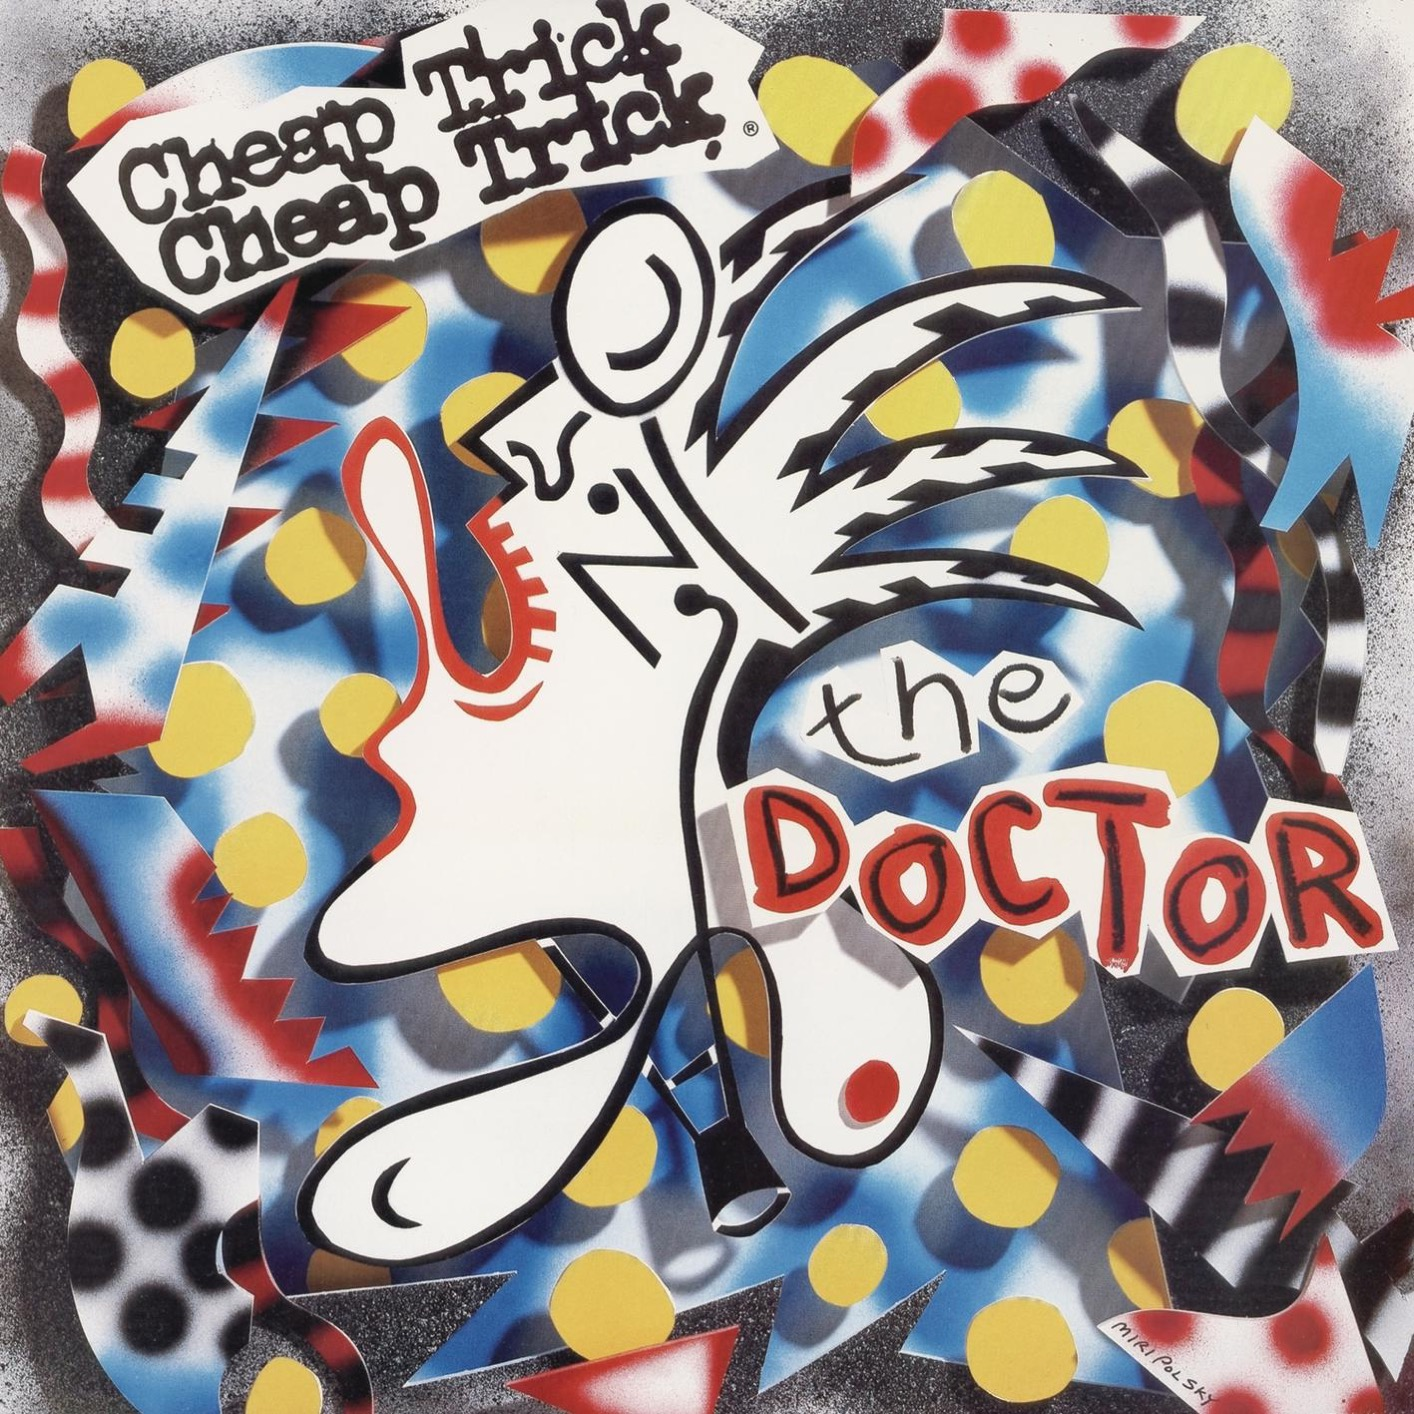 Cheap Trick The Doctor 1986 2015 Official Digital